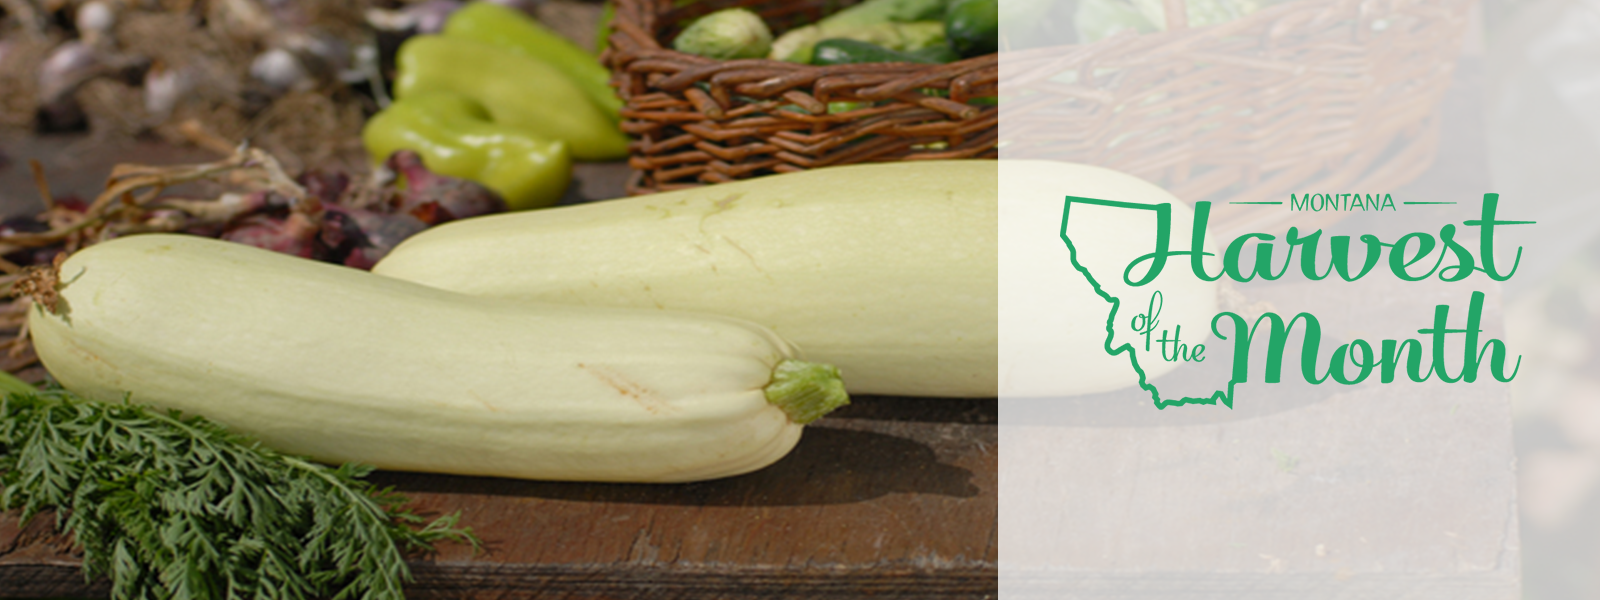 Enjoy summer squash as this month's Harvest of the Month!